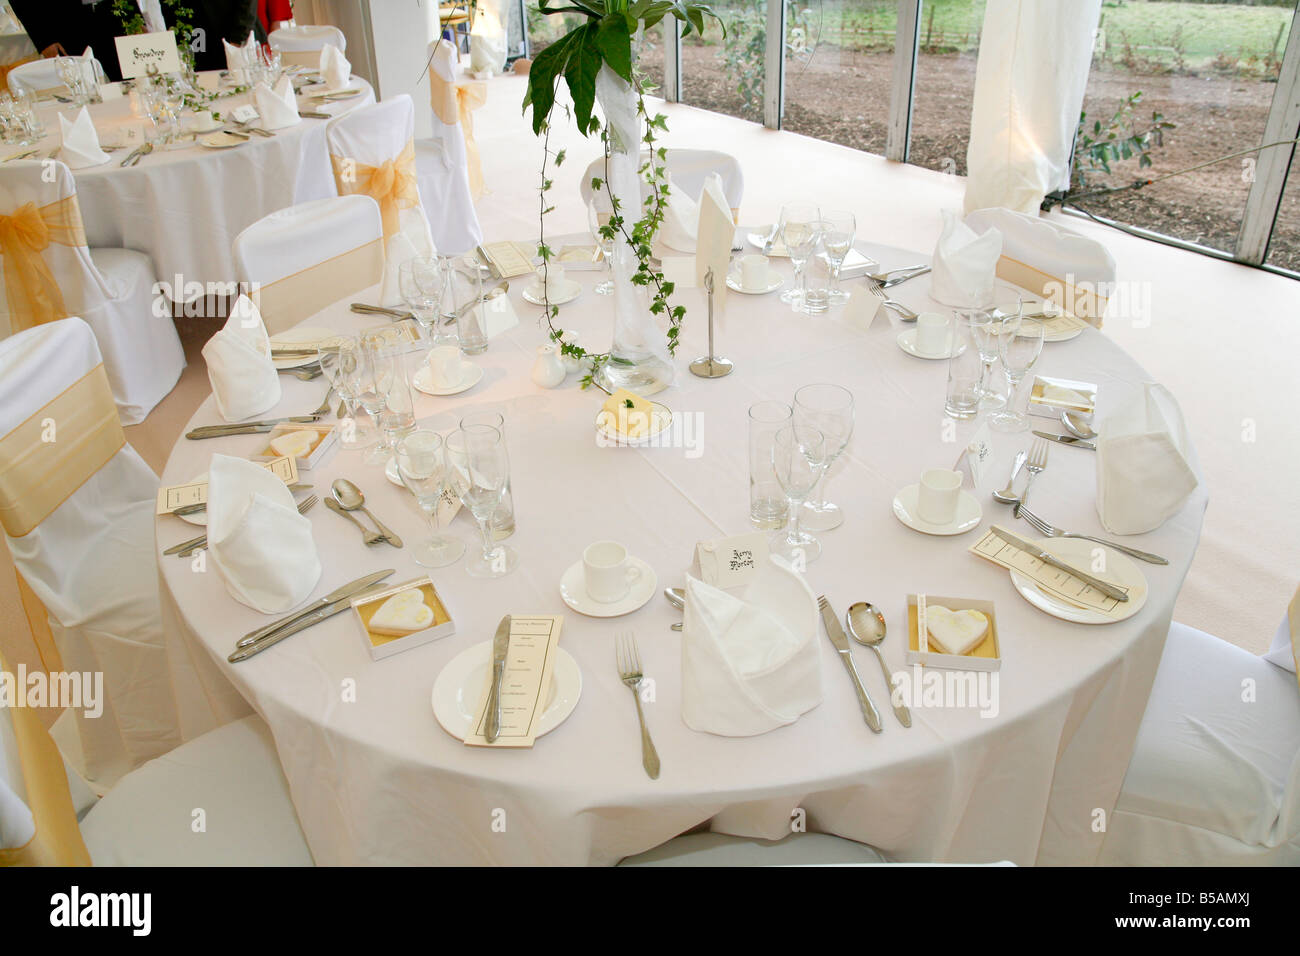 A Table Setting At A Wedding Reception Stock Photo 20519594 Alamy